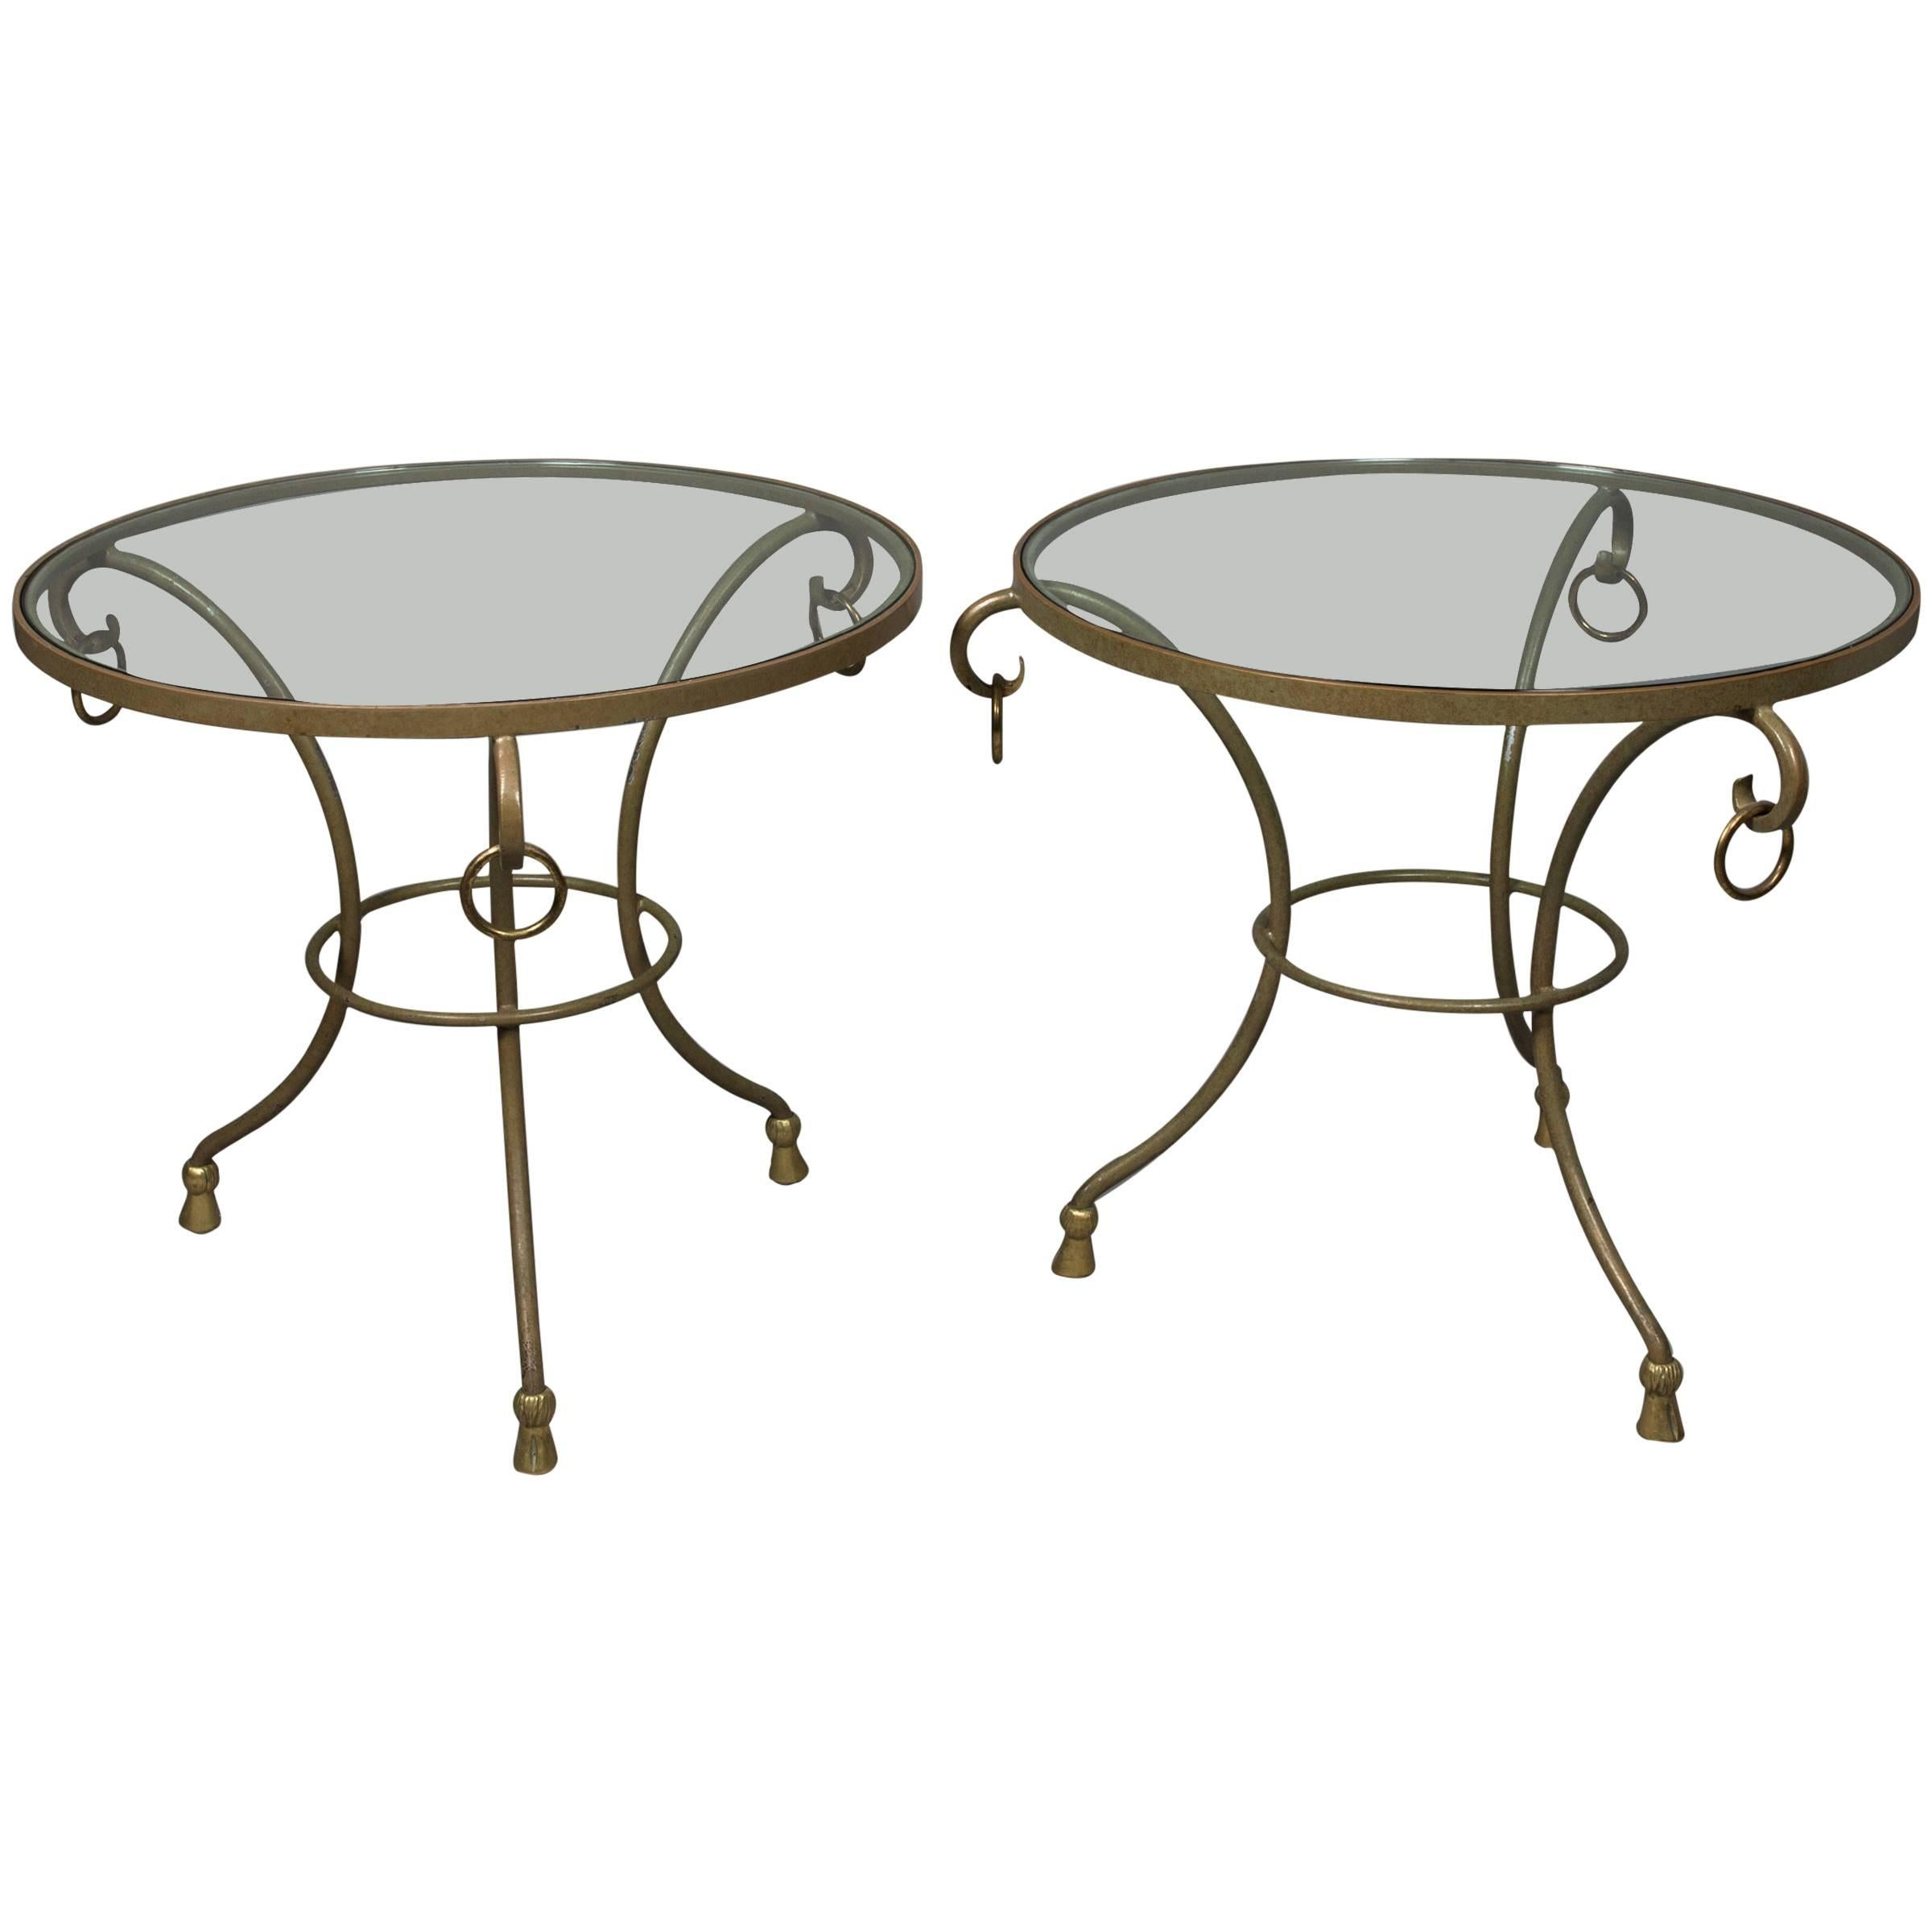 Pair of Round Regency Style Side Tables